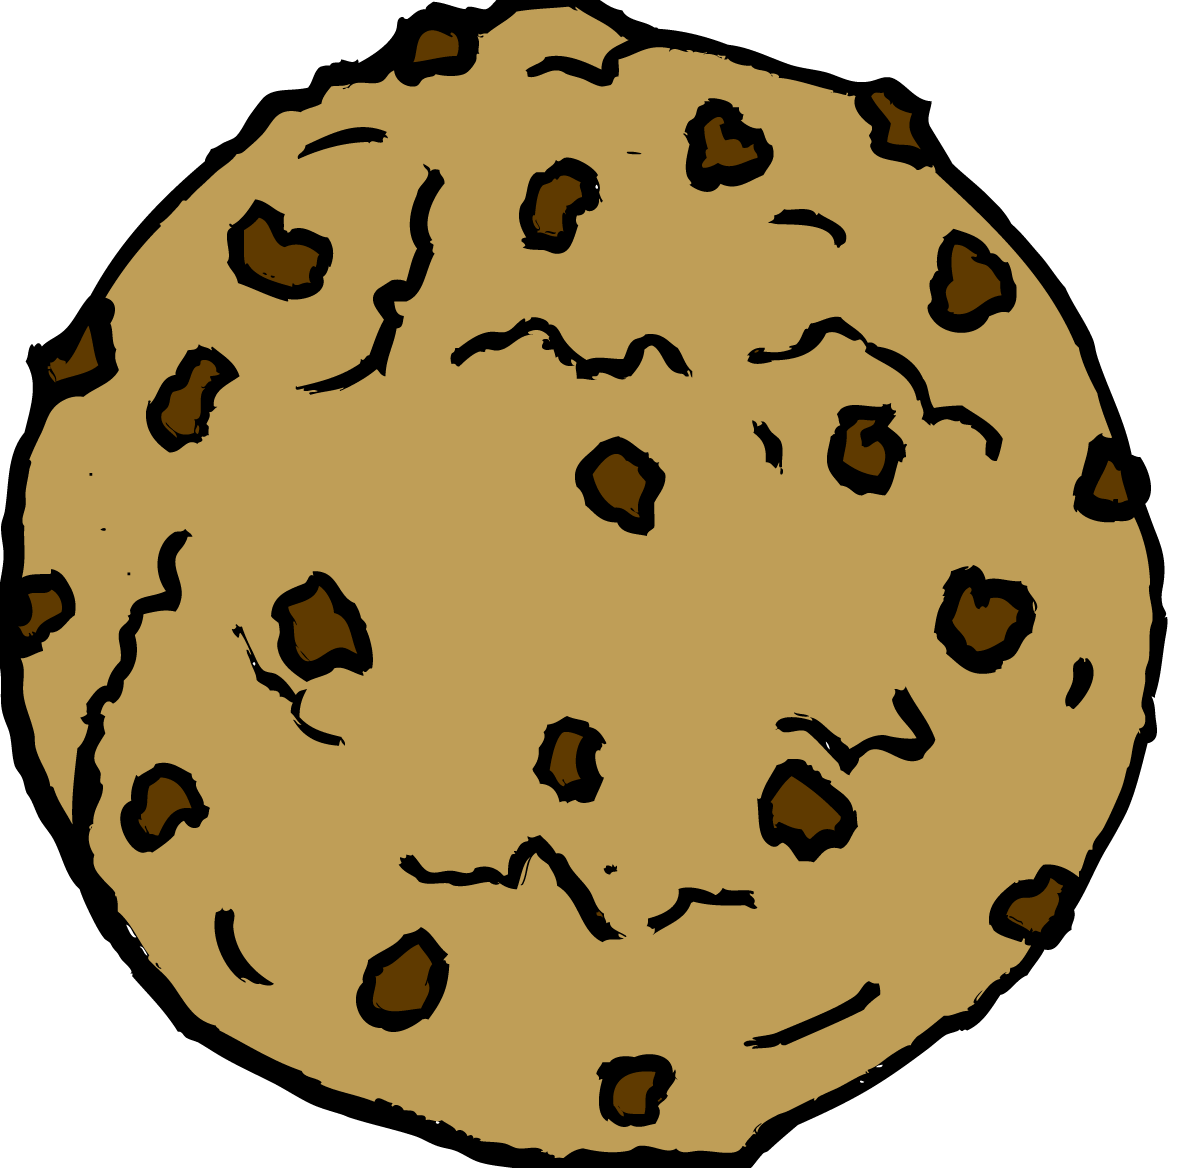 Cookie clipart #9, Download drawings